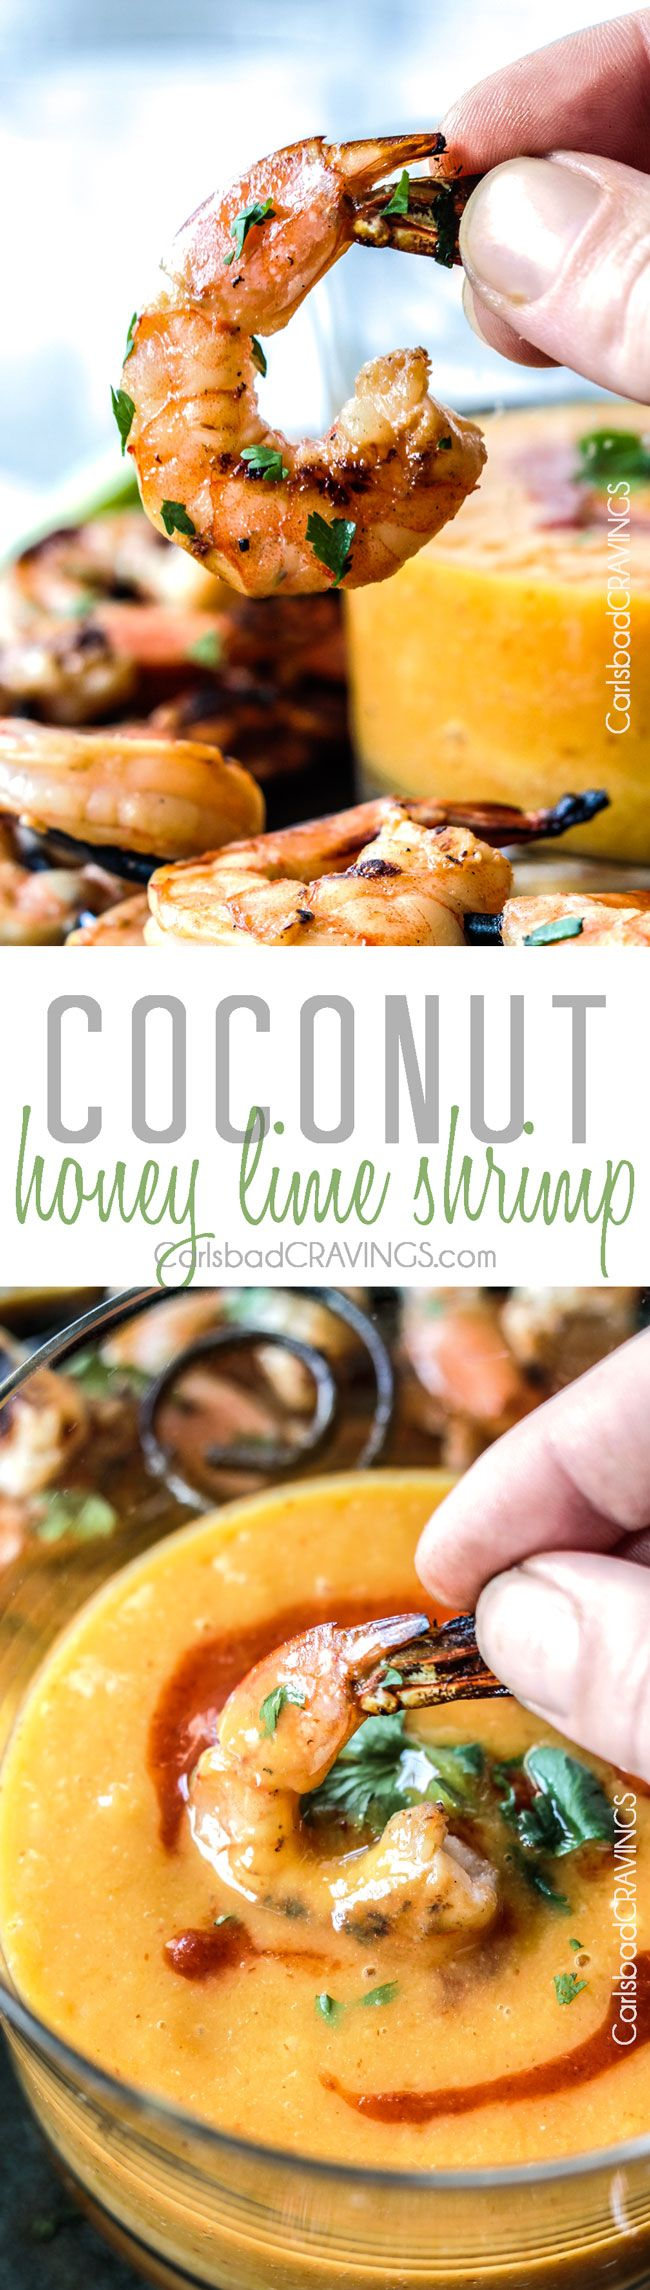 Easy grilled or stovetop Coconut Honey Lime Shrimp bursting with flavor bathed in the most intoxicating creamy sweet heat Sriracha Mango Dip.   better than any restaurant!